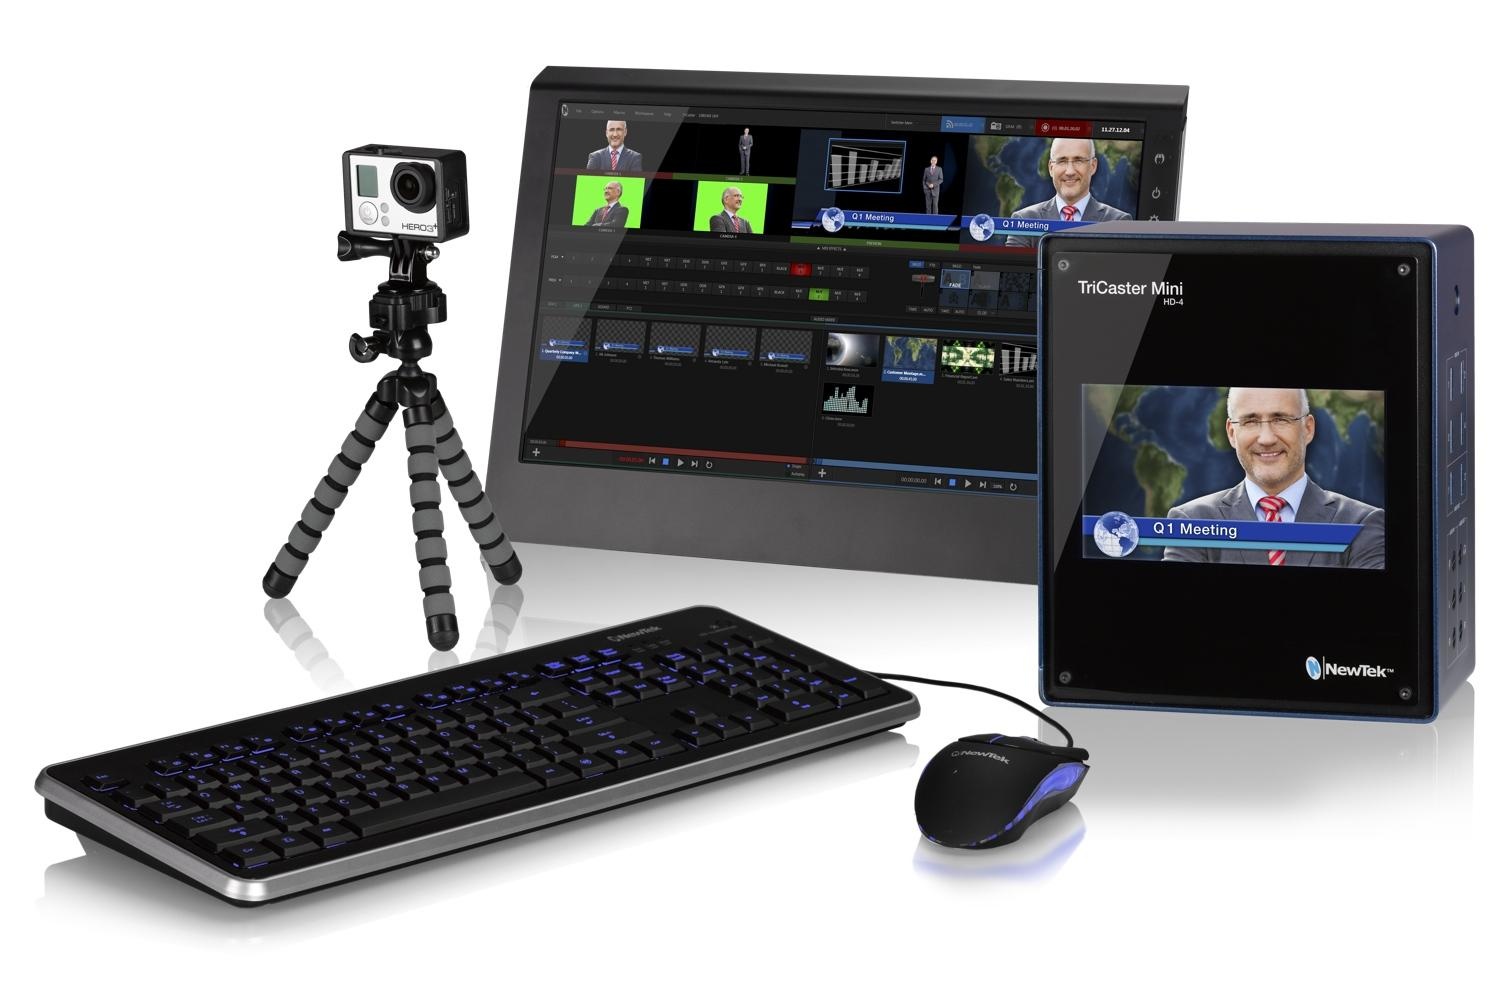 Newtek Tricaster Mini Puts Pro Tv Production Into A Small